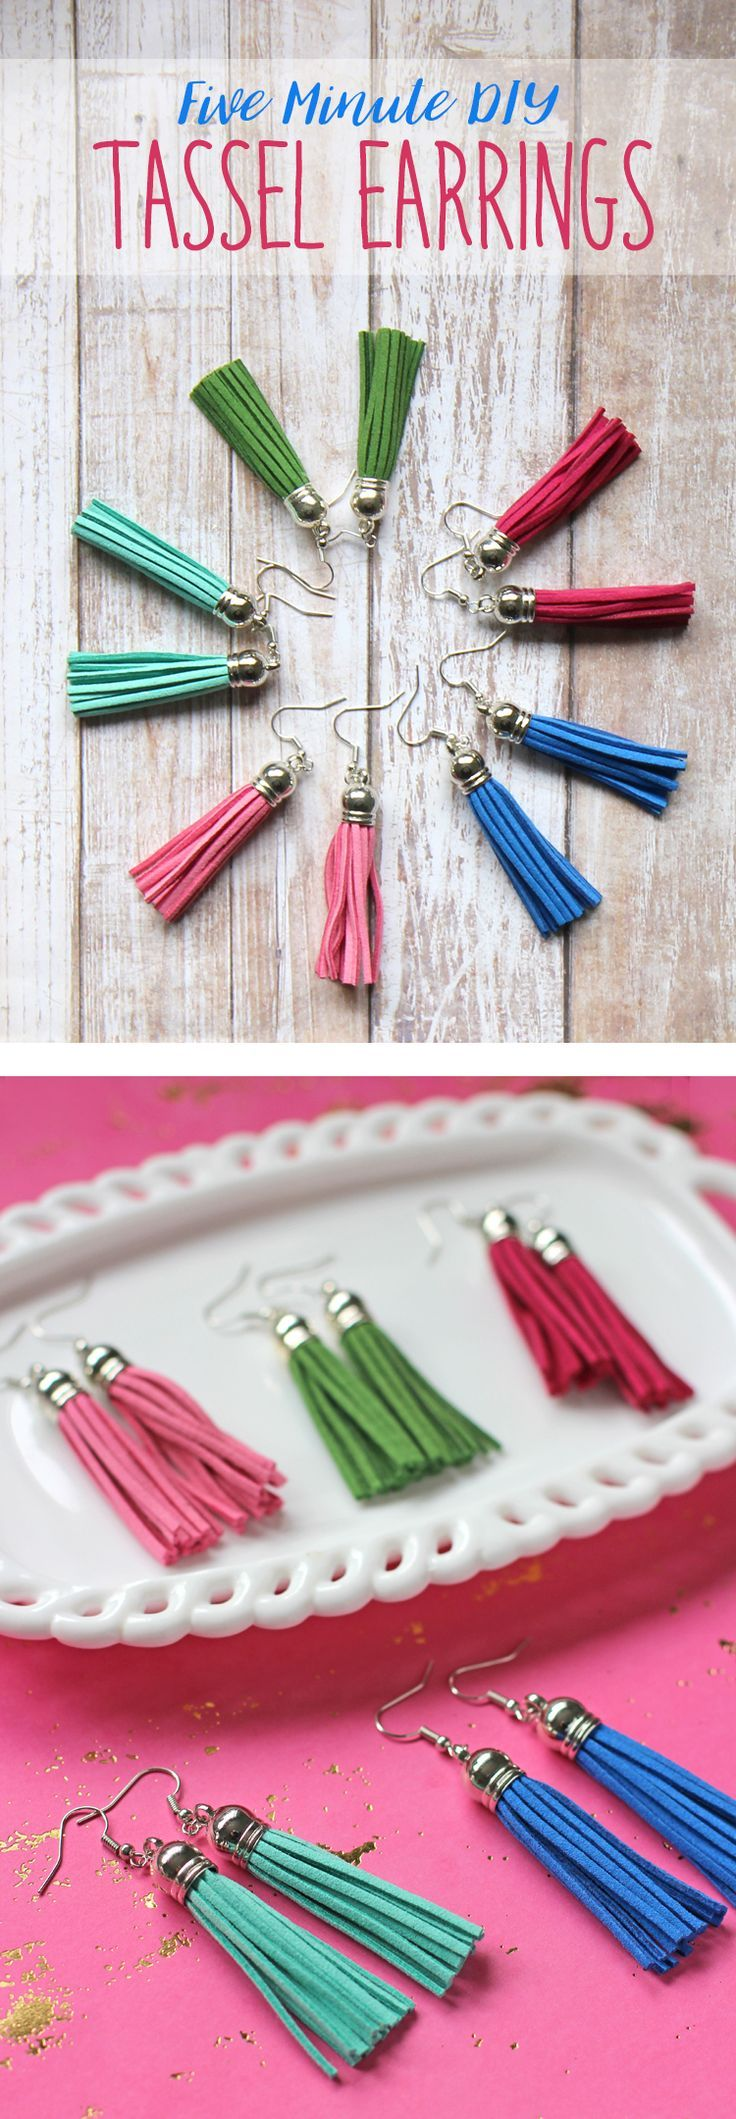 Easy DIY tassel earrings perfect for beginners. Handmade jewelry tutorial